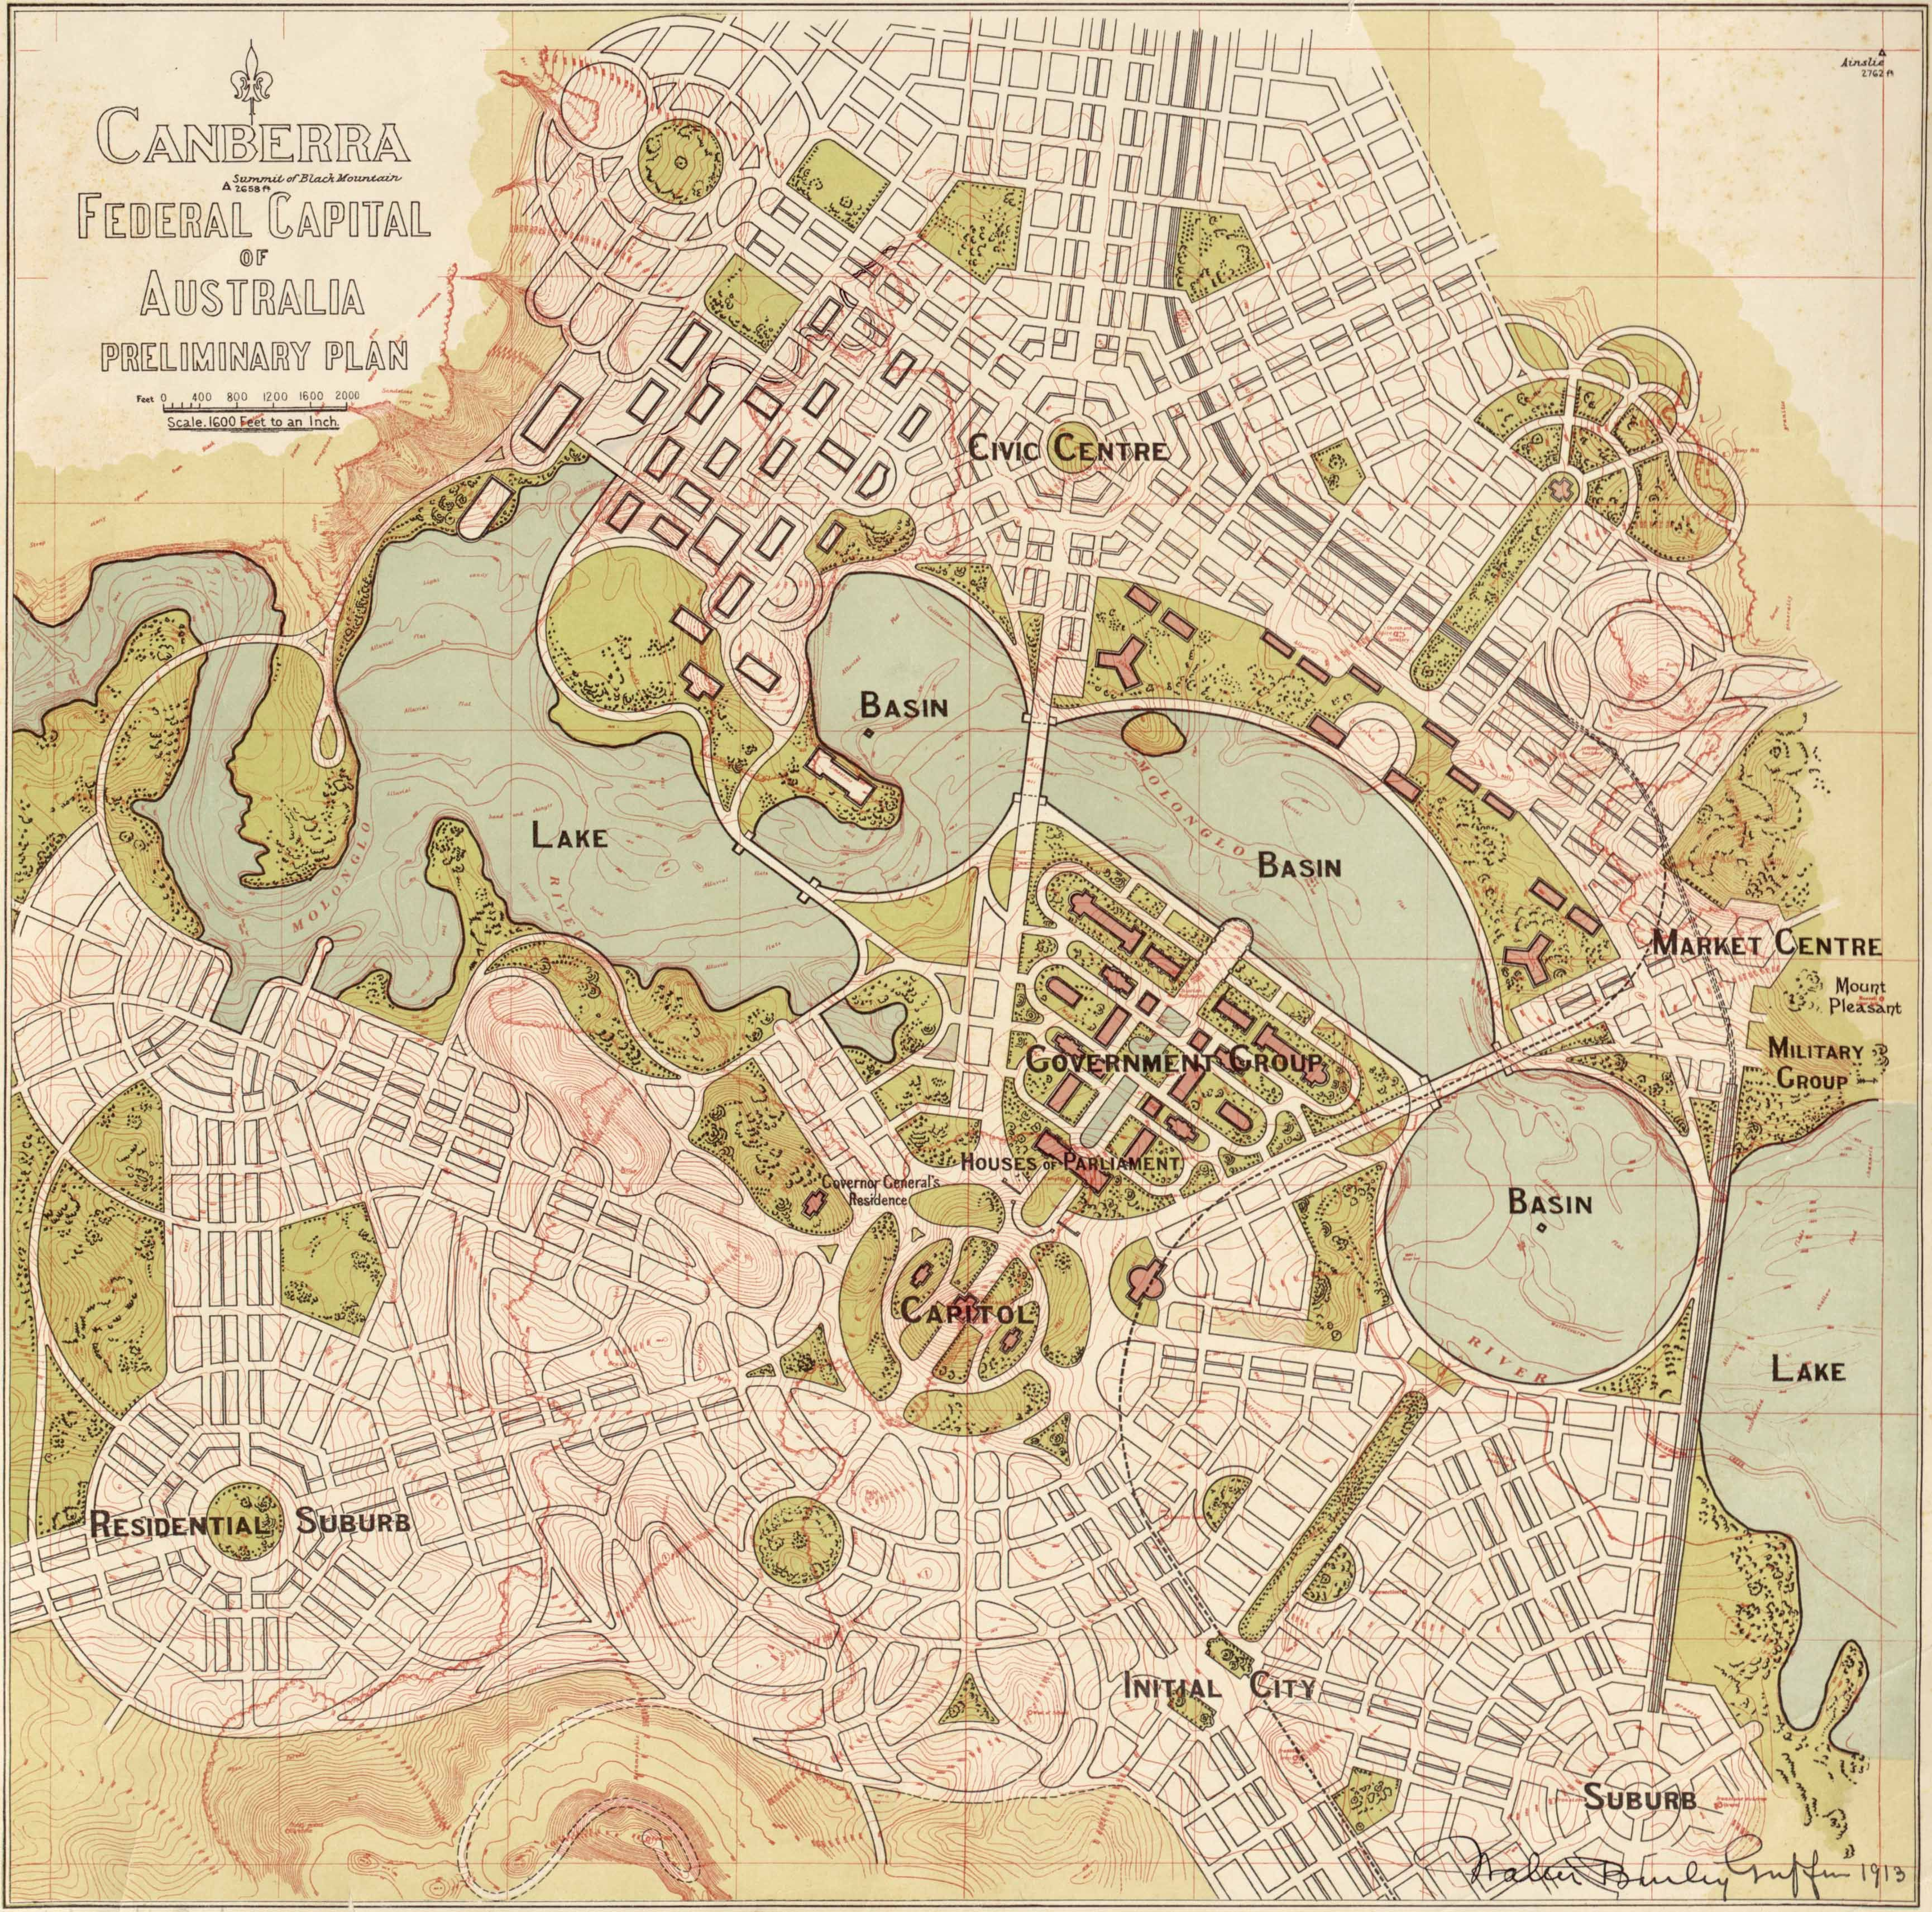 Canberra preliminary plan by WB Griffin 1913 #map #canberra #australia